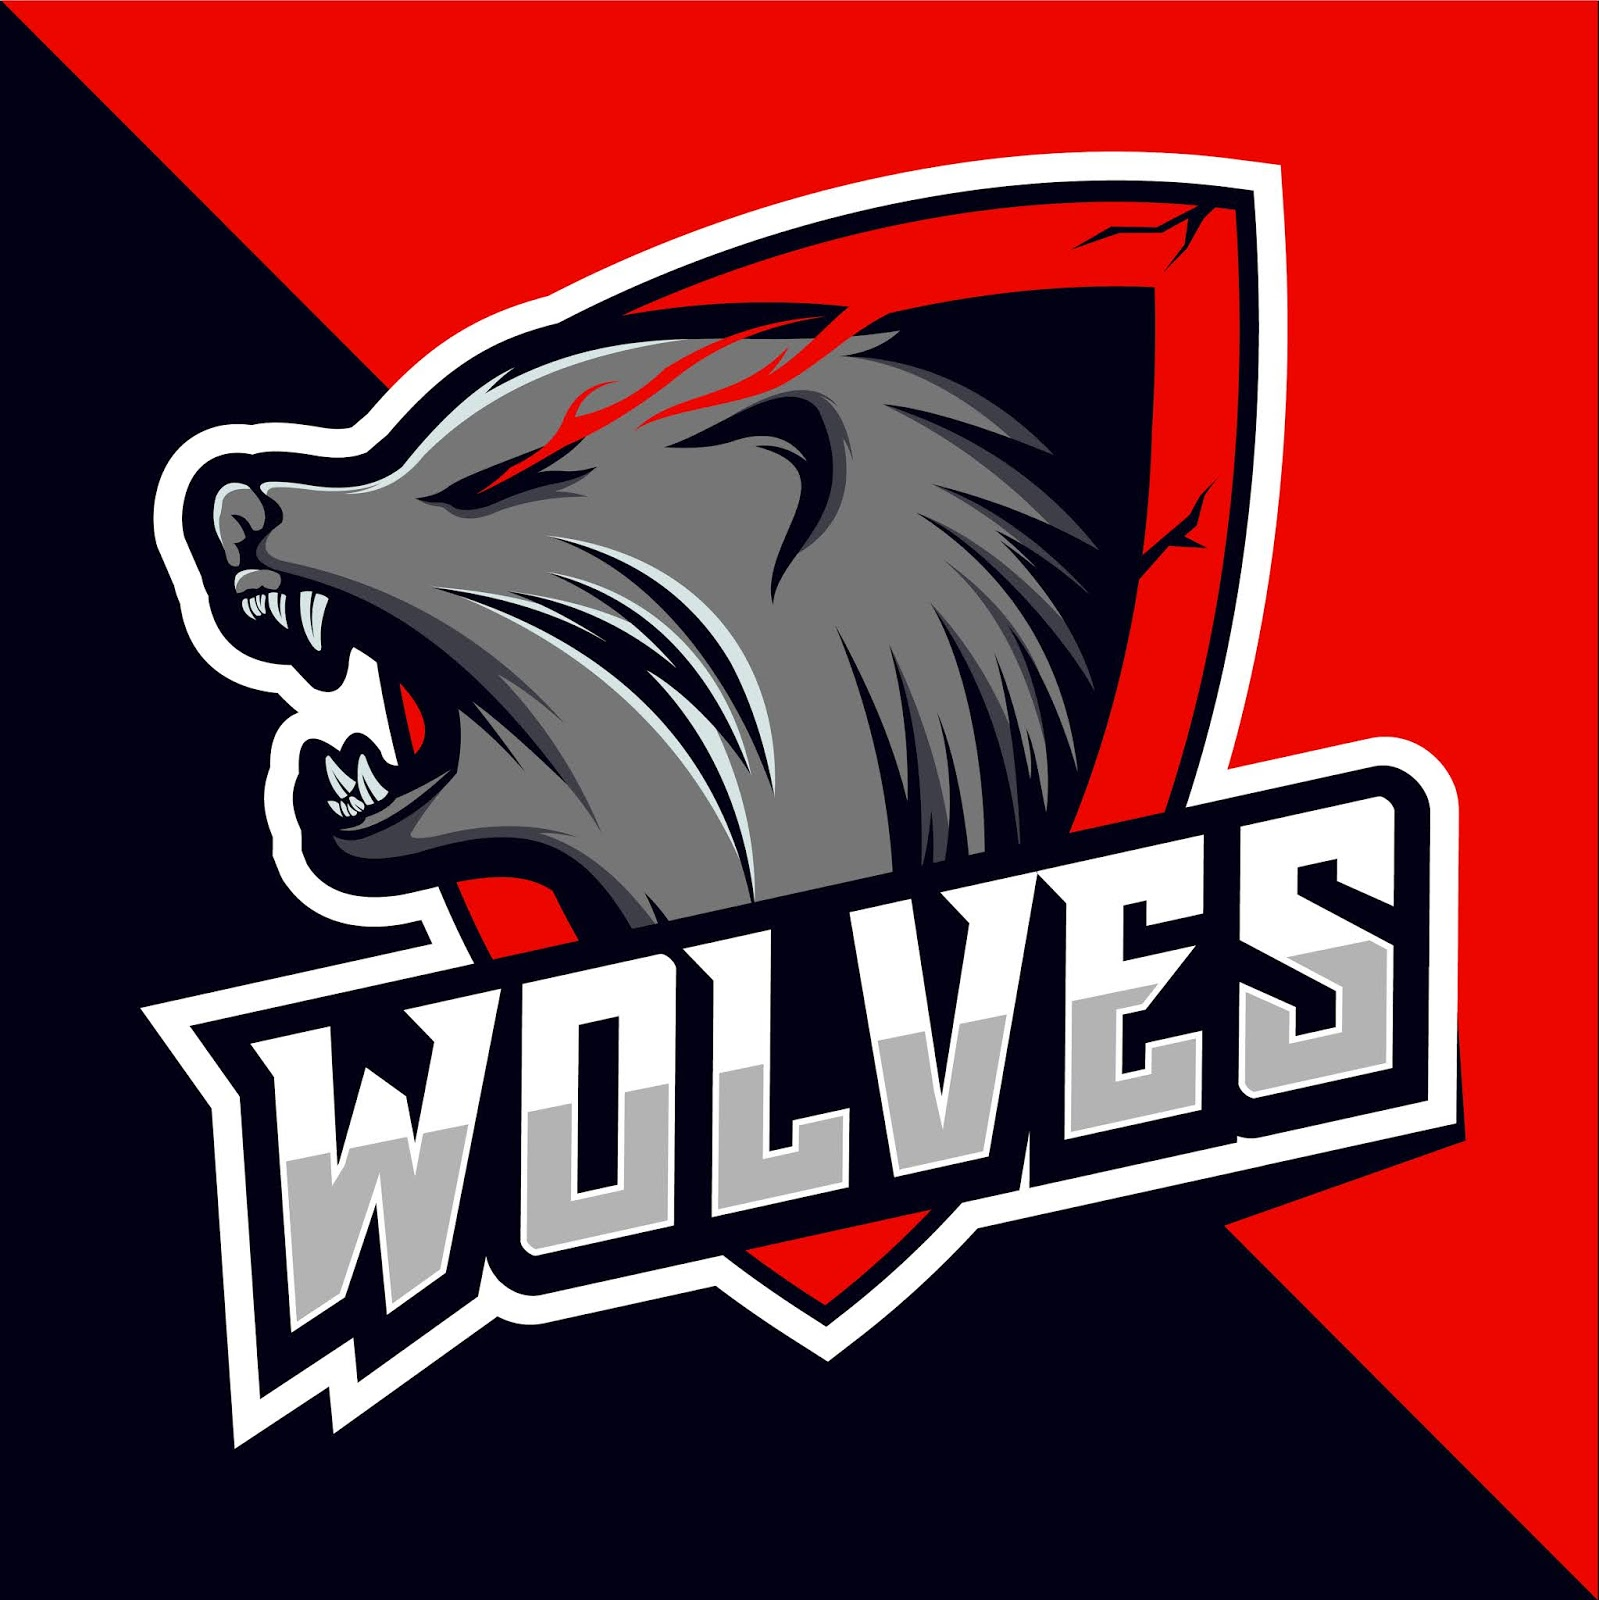 Wolves Head Mascot Esport Logo Design Free Download Vector CDR, AI, EPS and PNG Formats